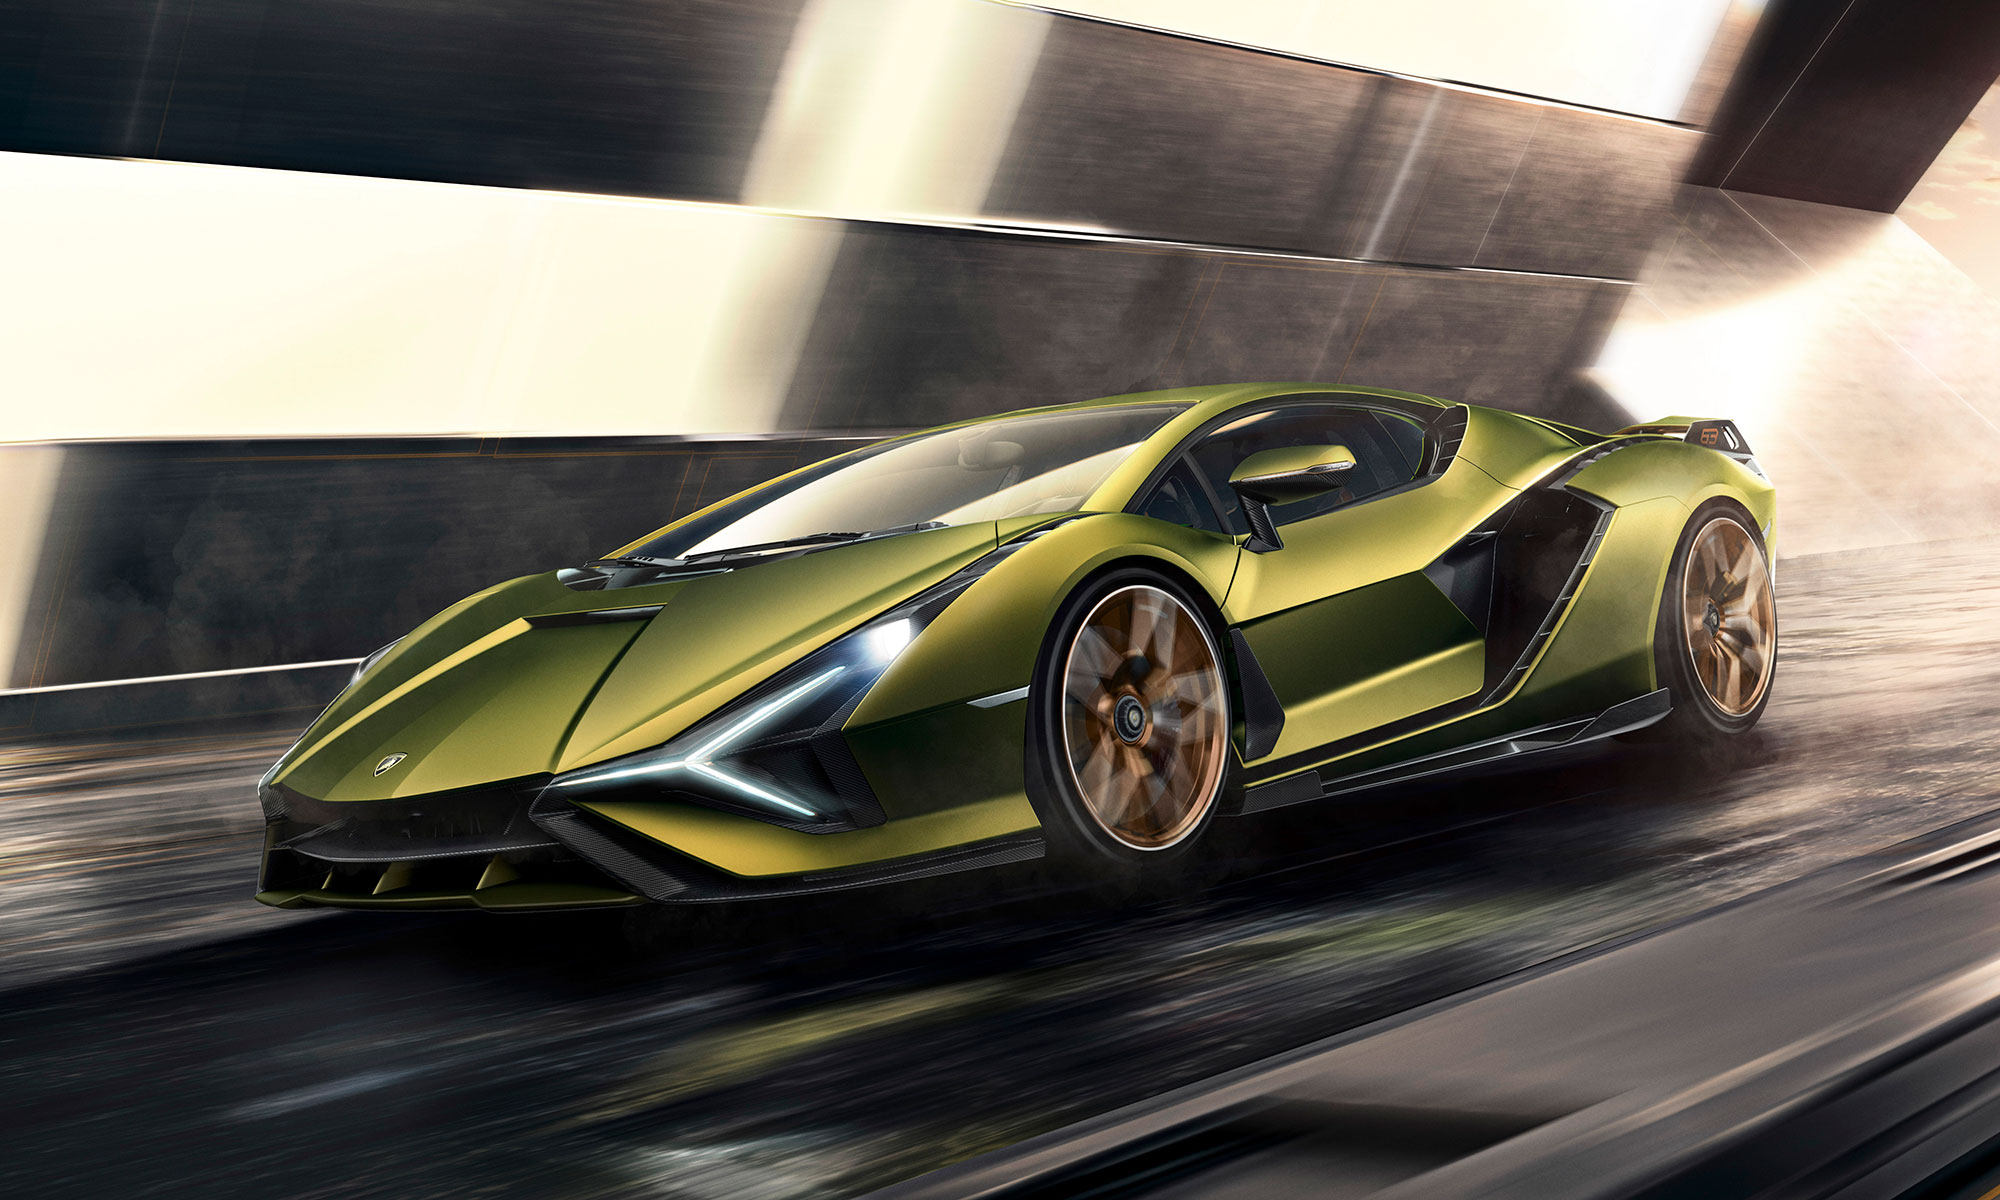 Lamborghini Sian, Lamborghini, Sian, supercar, hybrid car, Electrified production car, lambo, hybrid super sports car, electrified model, online debut, Frankfurt Motor Show, 6.5-liter V12 naturally aspirated engine, 819 hp, horsepower, most powerful production, wheels, seven-speed automatic gearbox, Terzo Millennio,